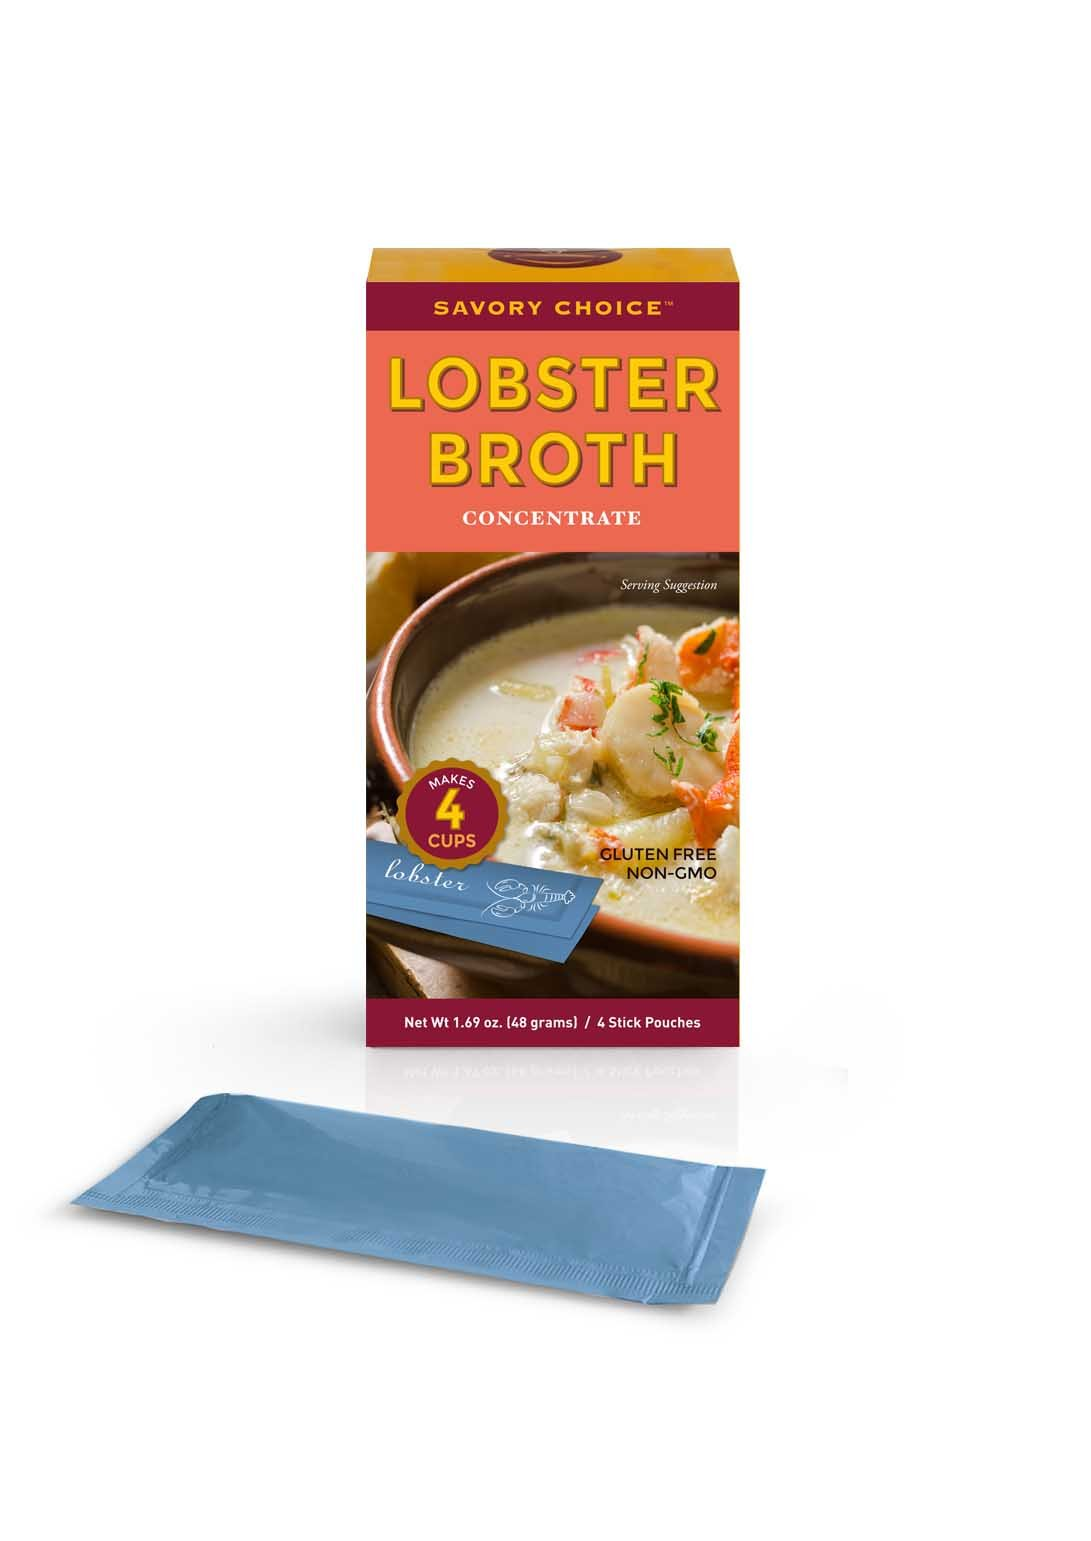 Savory Choice Lobster Broth Concentrate, Lobster, 1.69 Ounce (Pack of 12)